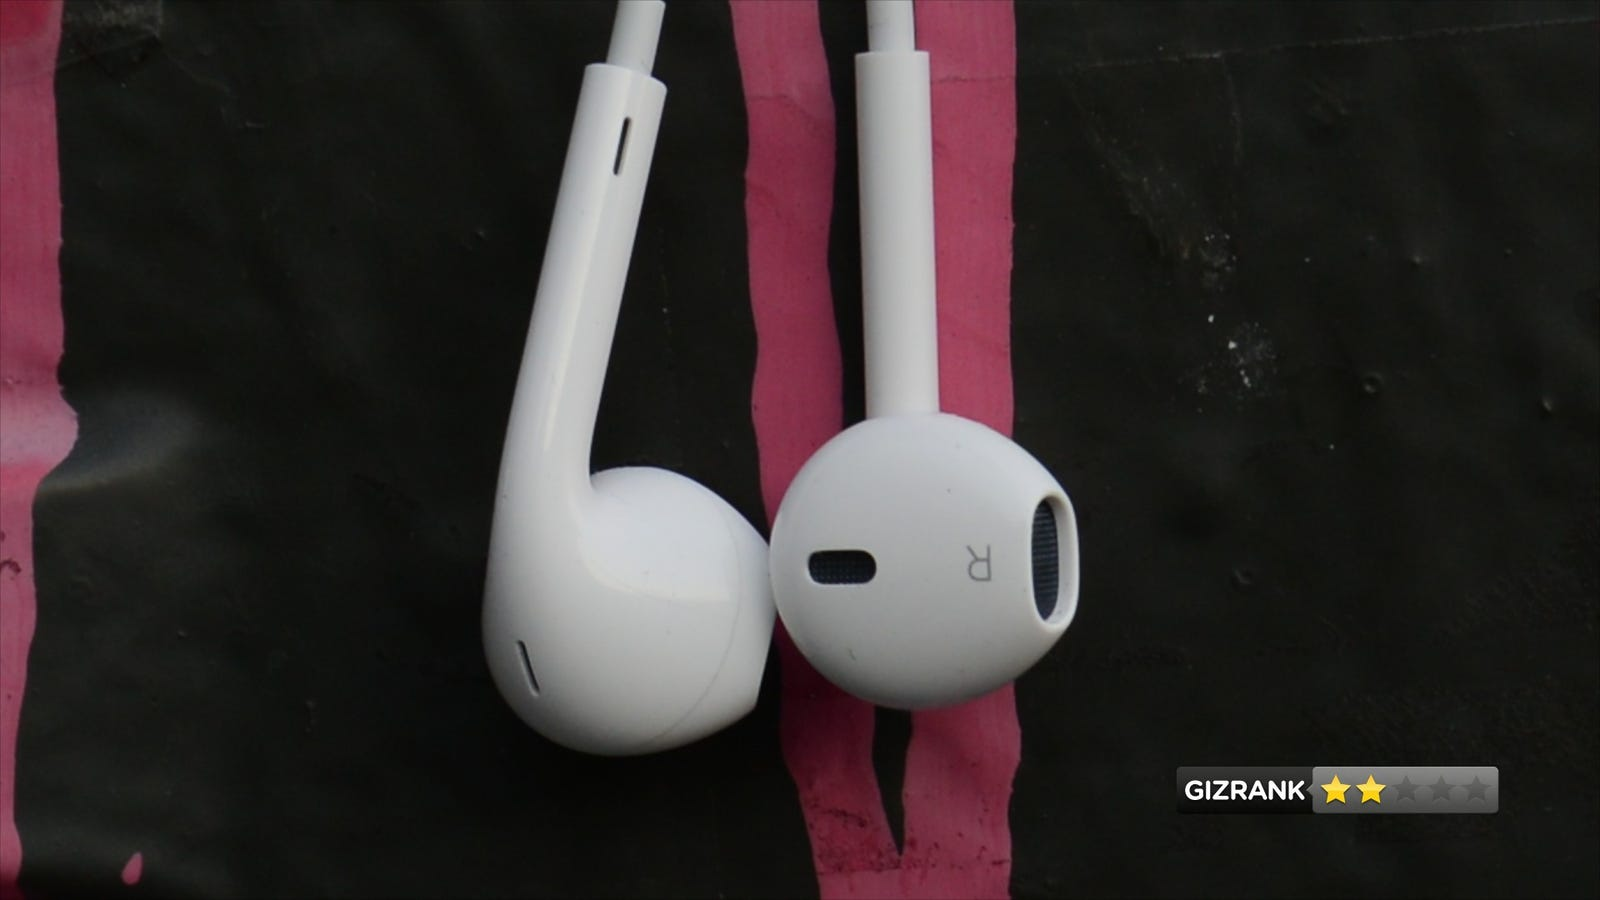 earbuds heavy duty cord - Apple EarPods Review: Better! (But Still Garbage)